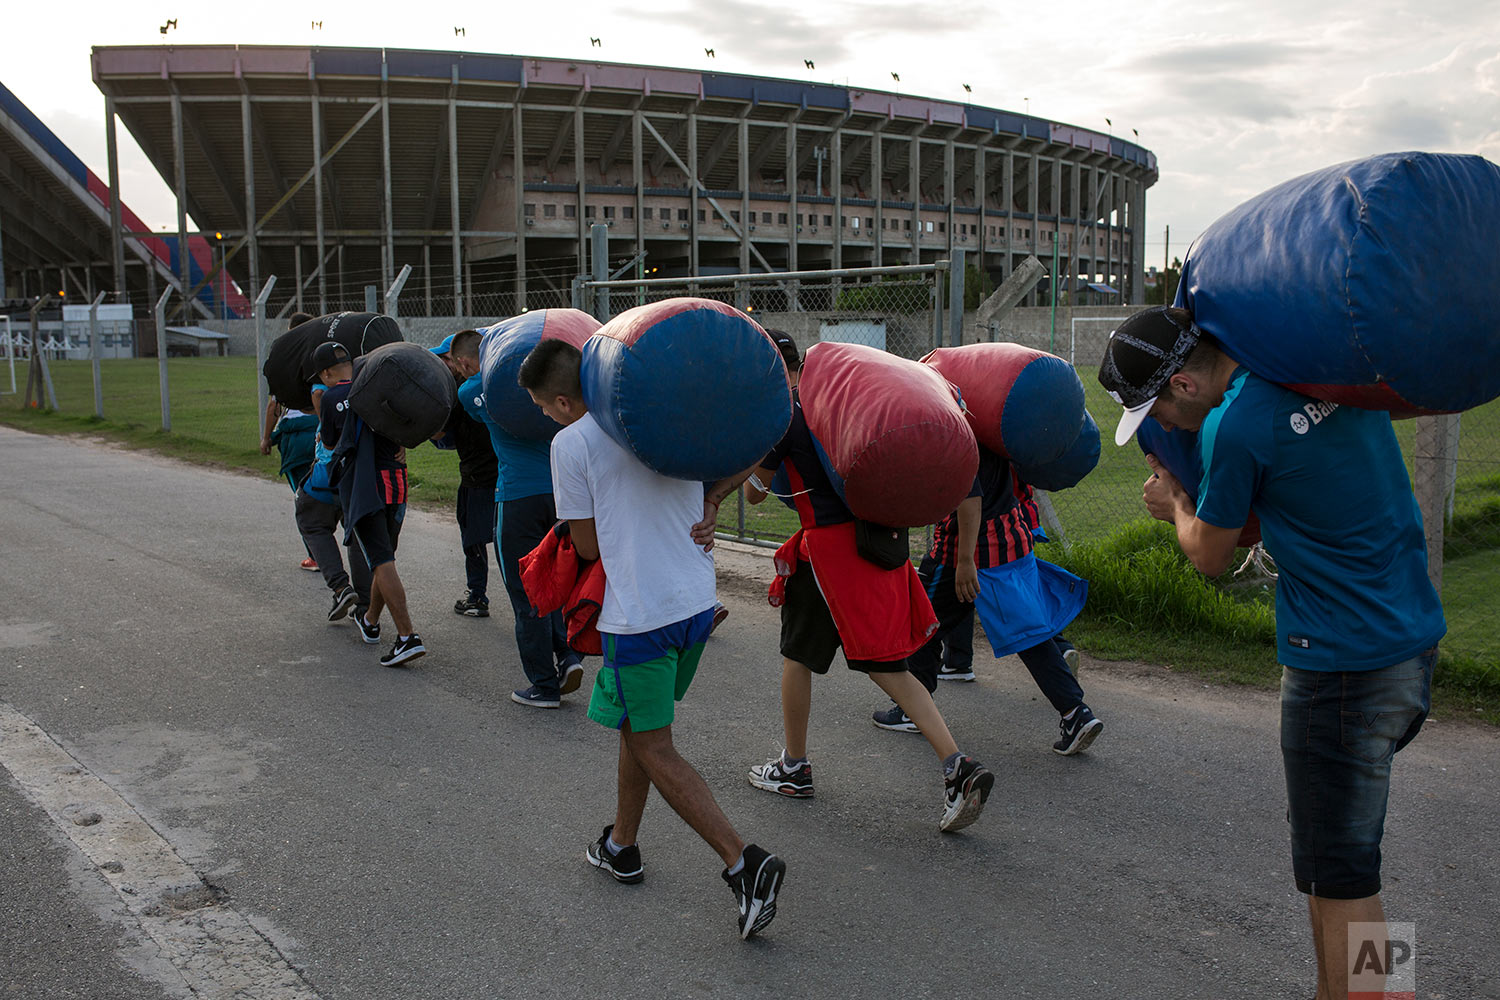 """In this April 11, 2018 photo, San Lorenzo soccer fans from the team's most militant fan base, coined """"La Butteler,"""" carry bags of team flags to be used in the stands, hours before the start of a match against Brazil's Atletico Mineiro in Buenos Aires, Argentina. (AP Photo/Rodrigo Abd)"""